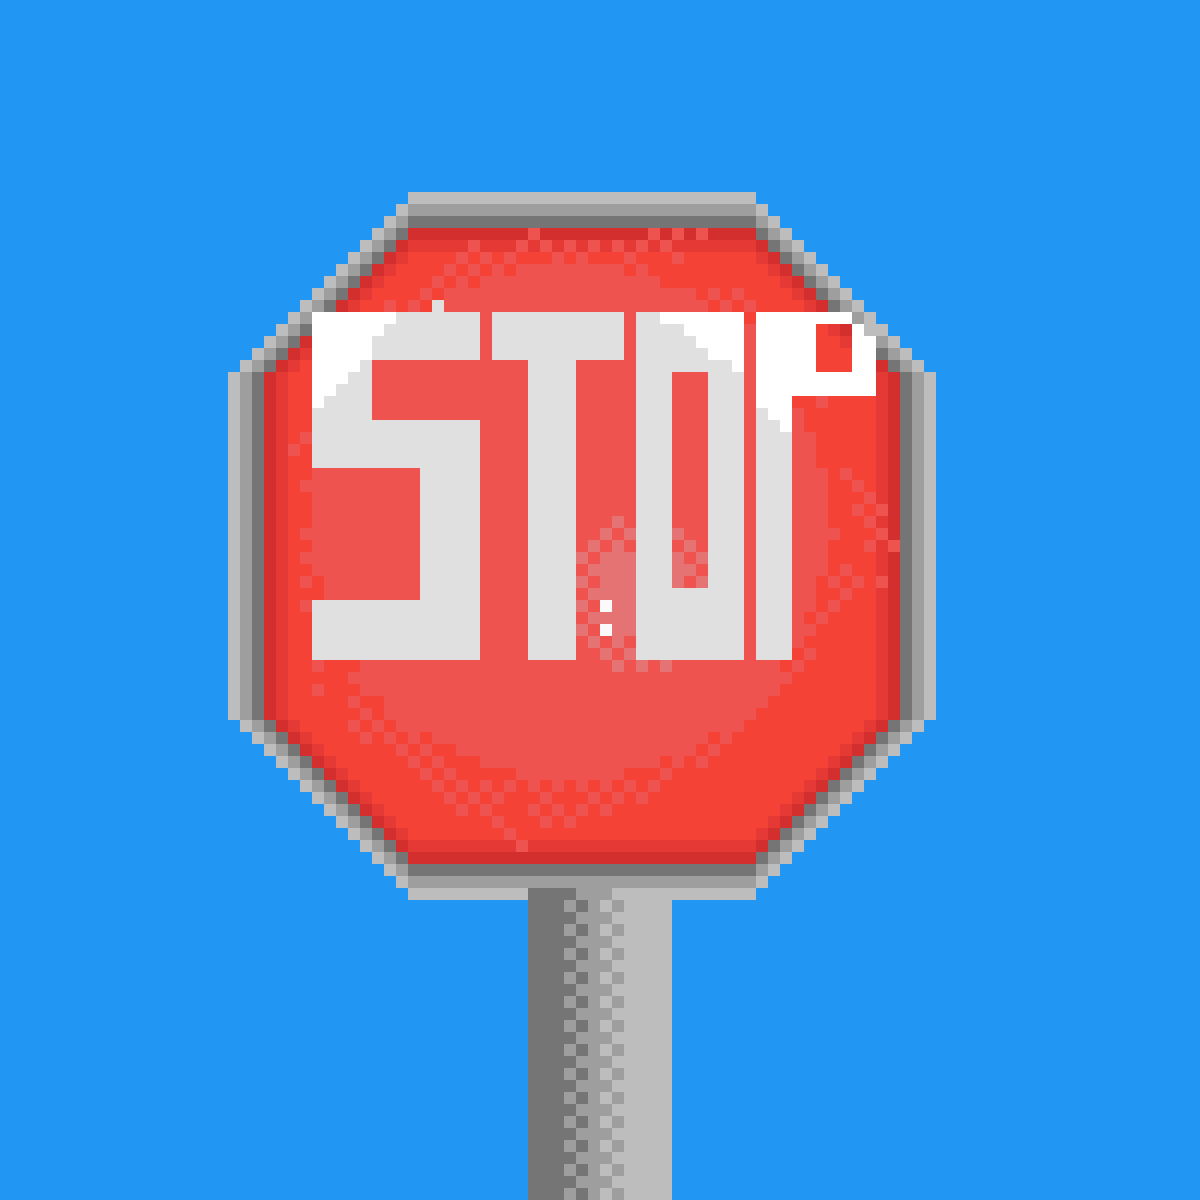 main-image-U must did done the stop NOW!!!!  by john-j-new-acc